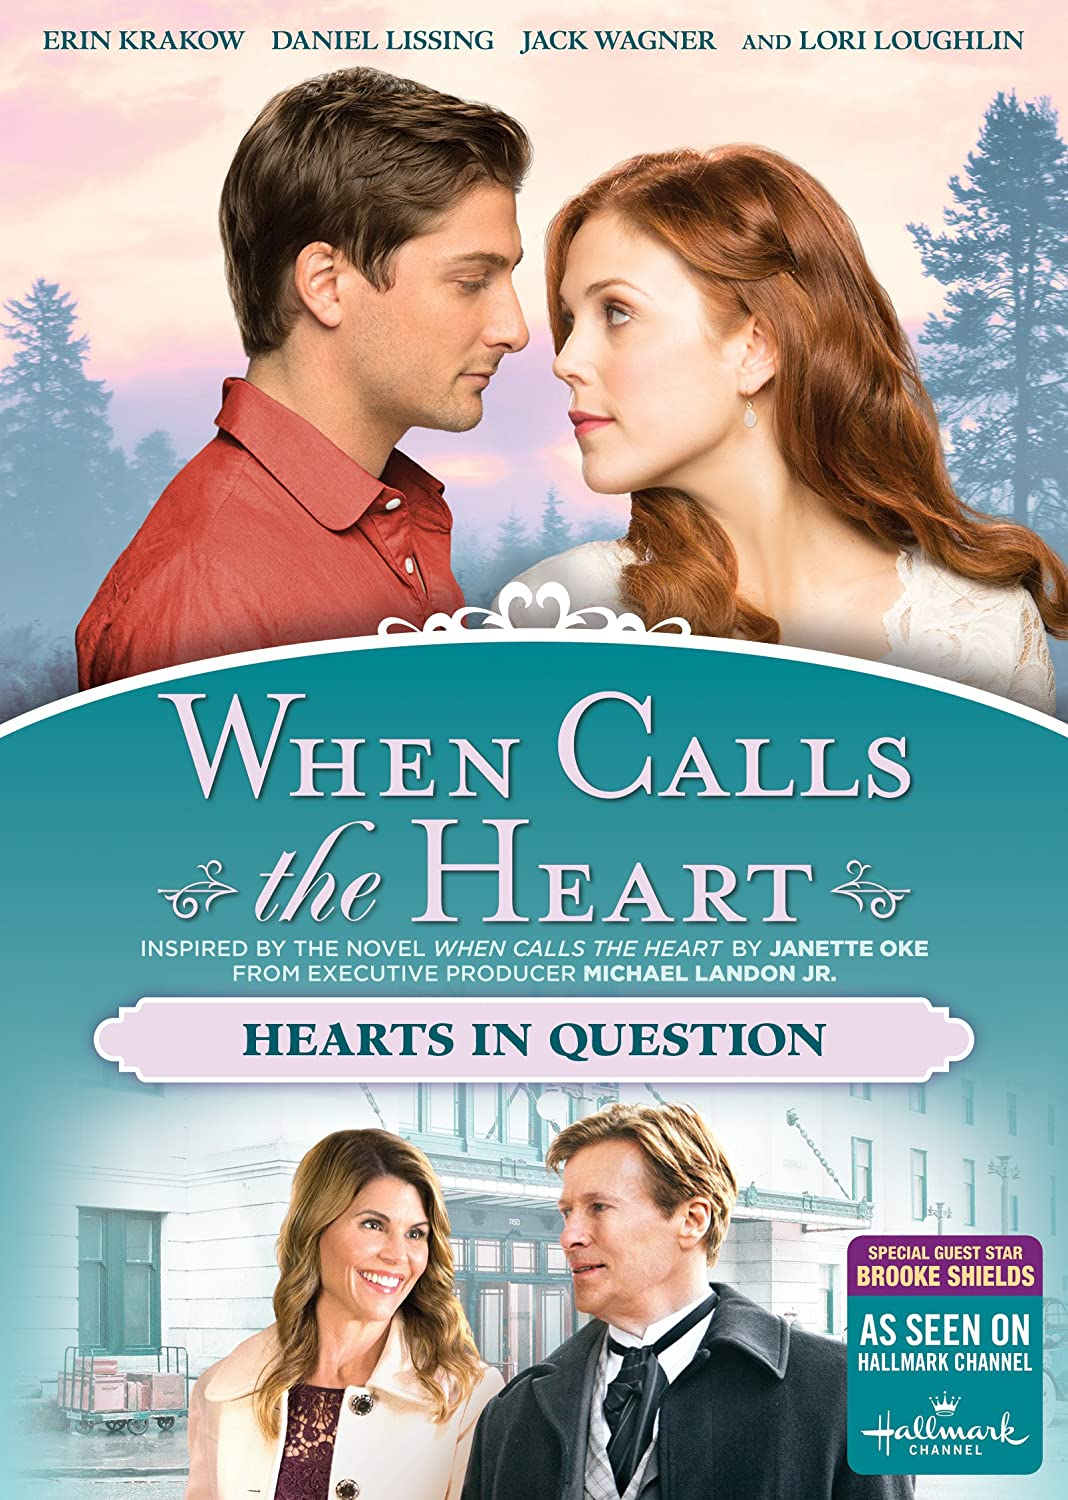 Hearts in Question - DVD Image